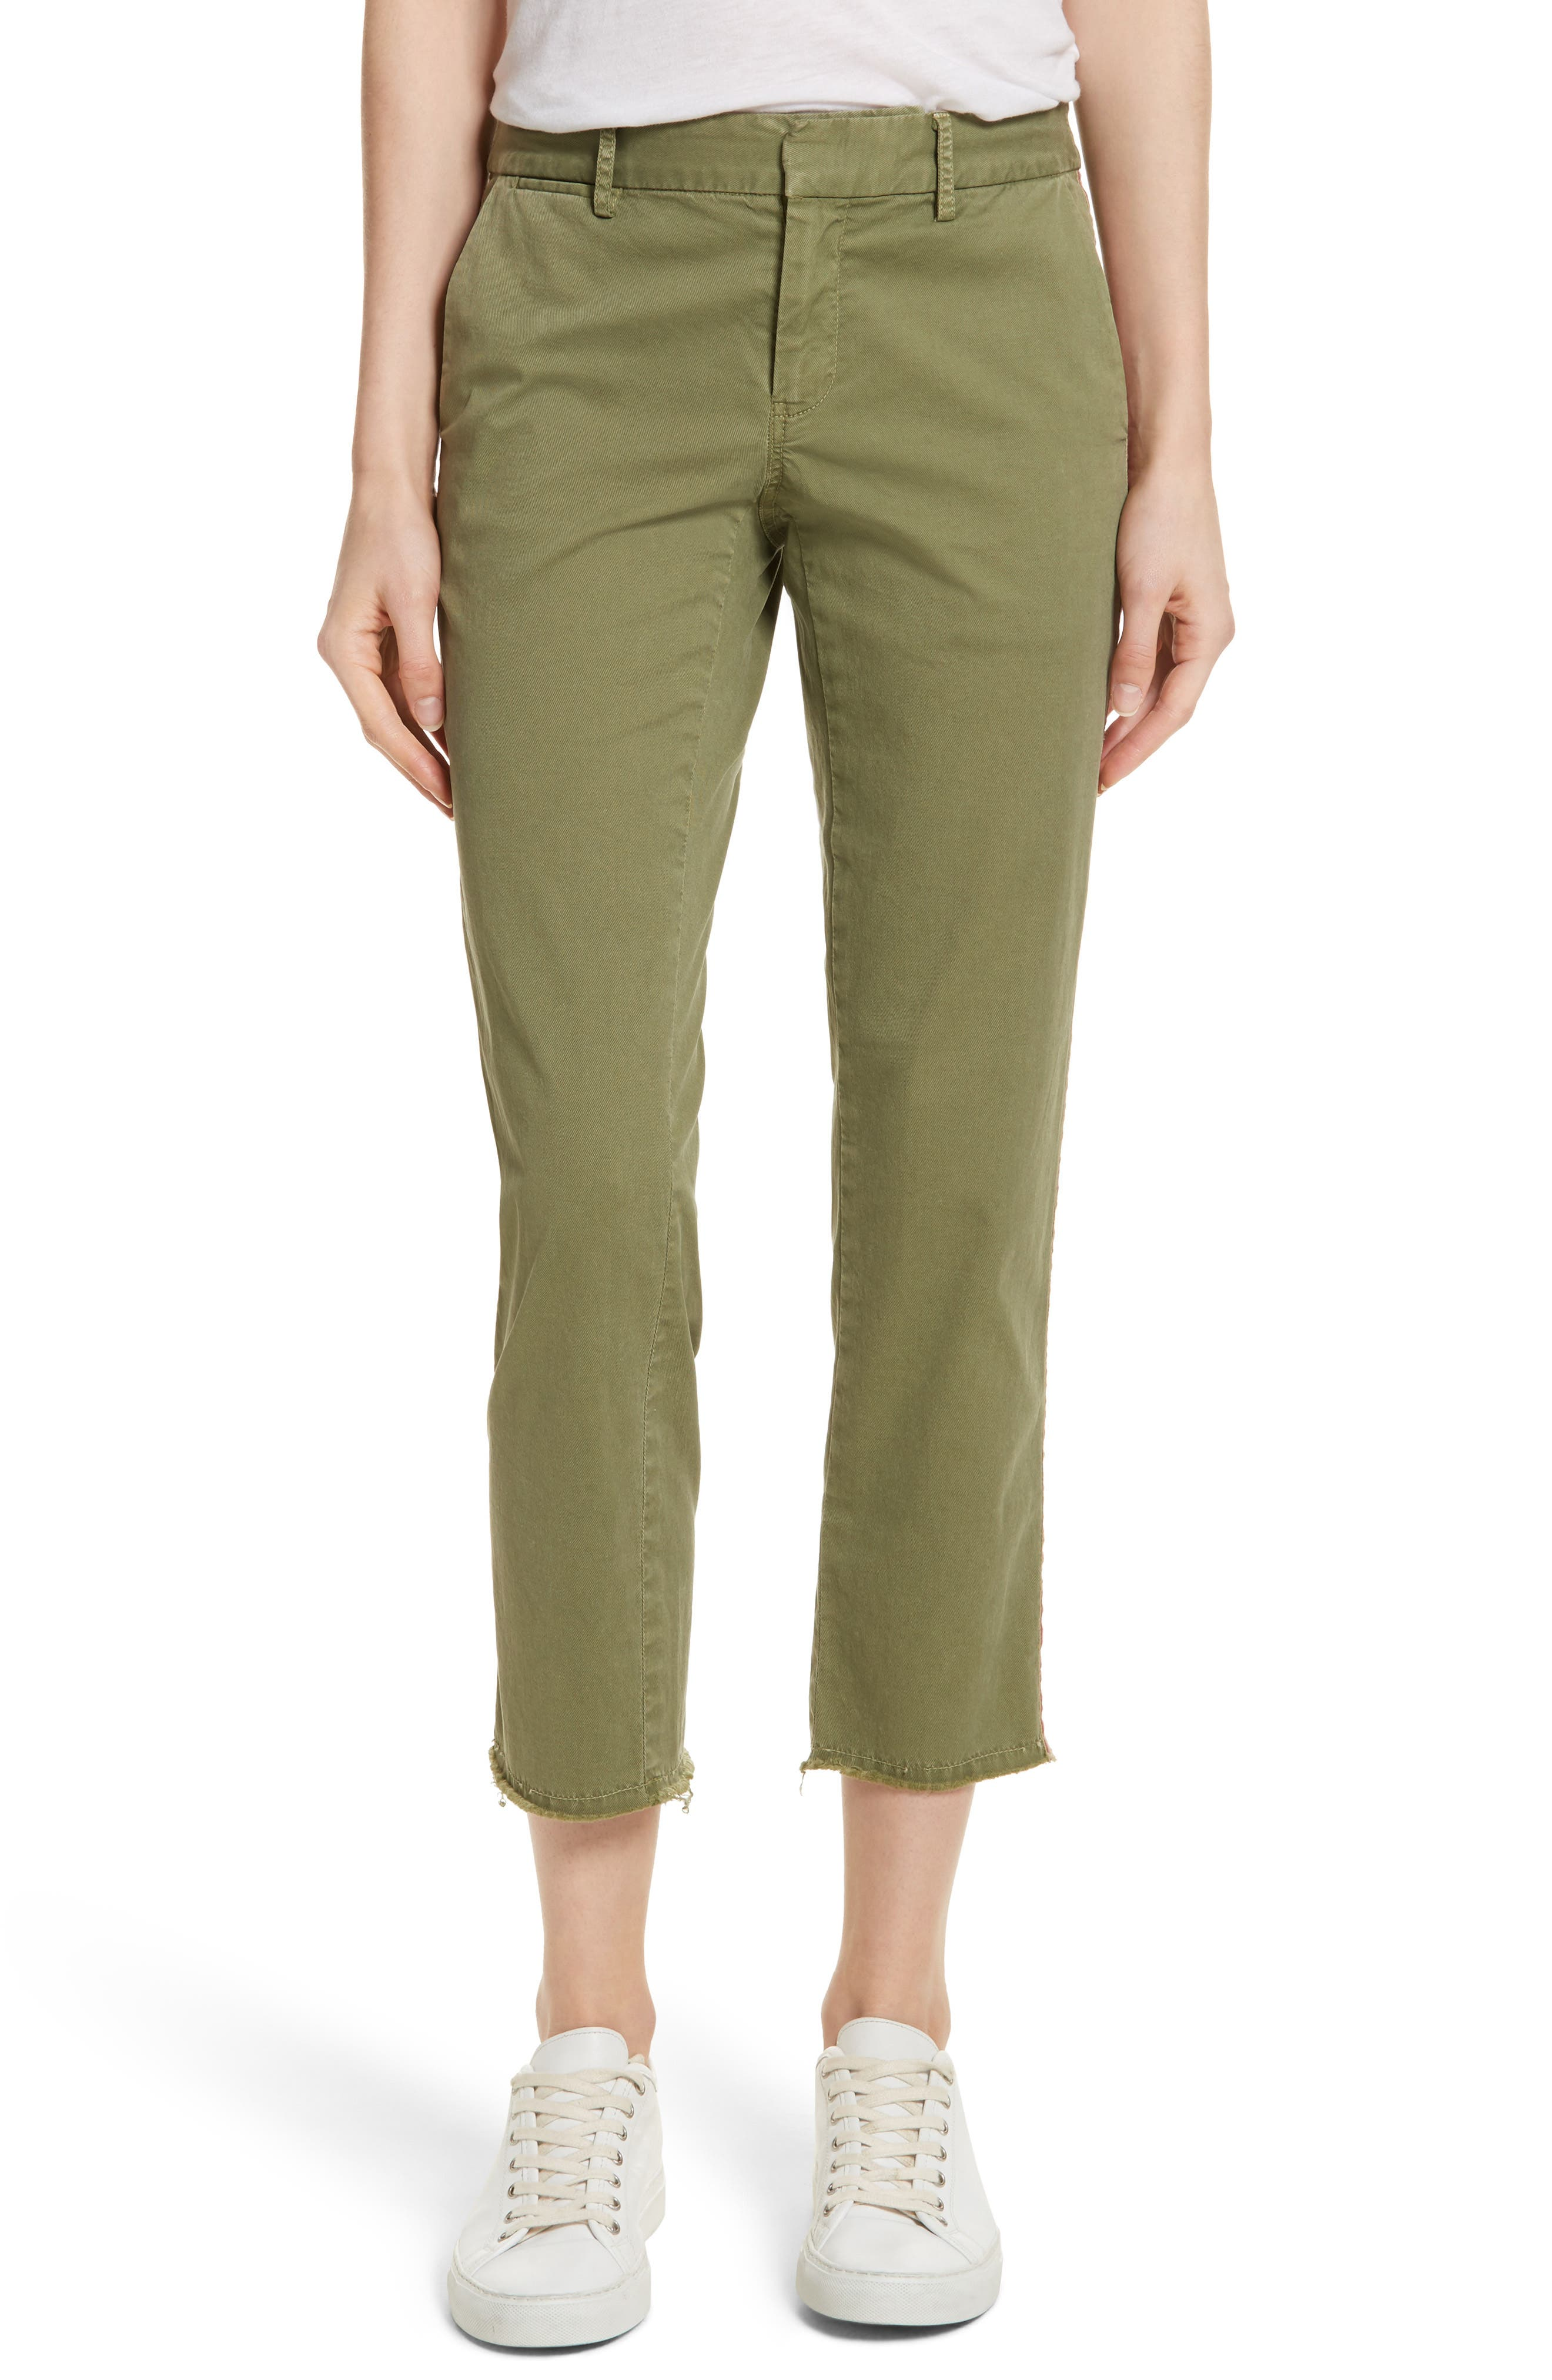 East Hampton Stretch Cotton Twill Crop Pants,                         Main,                         color, Army Green